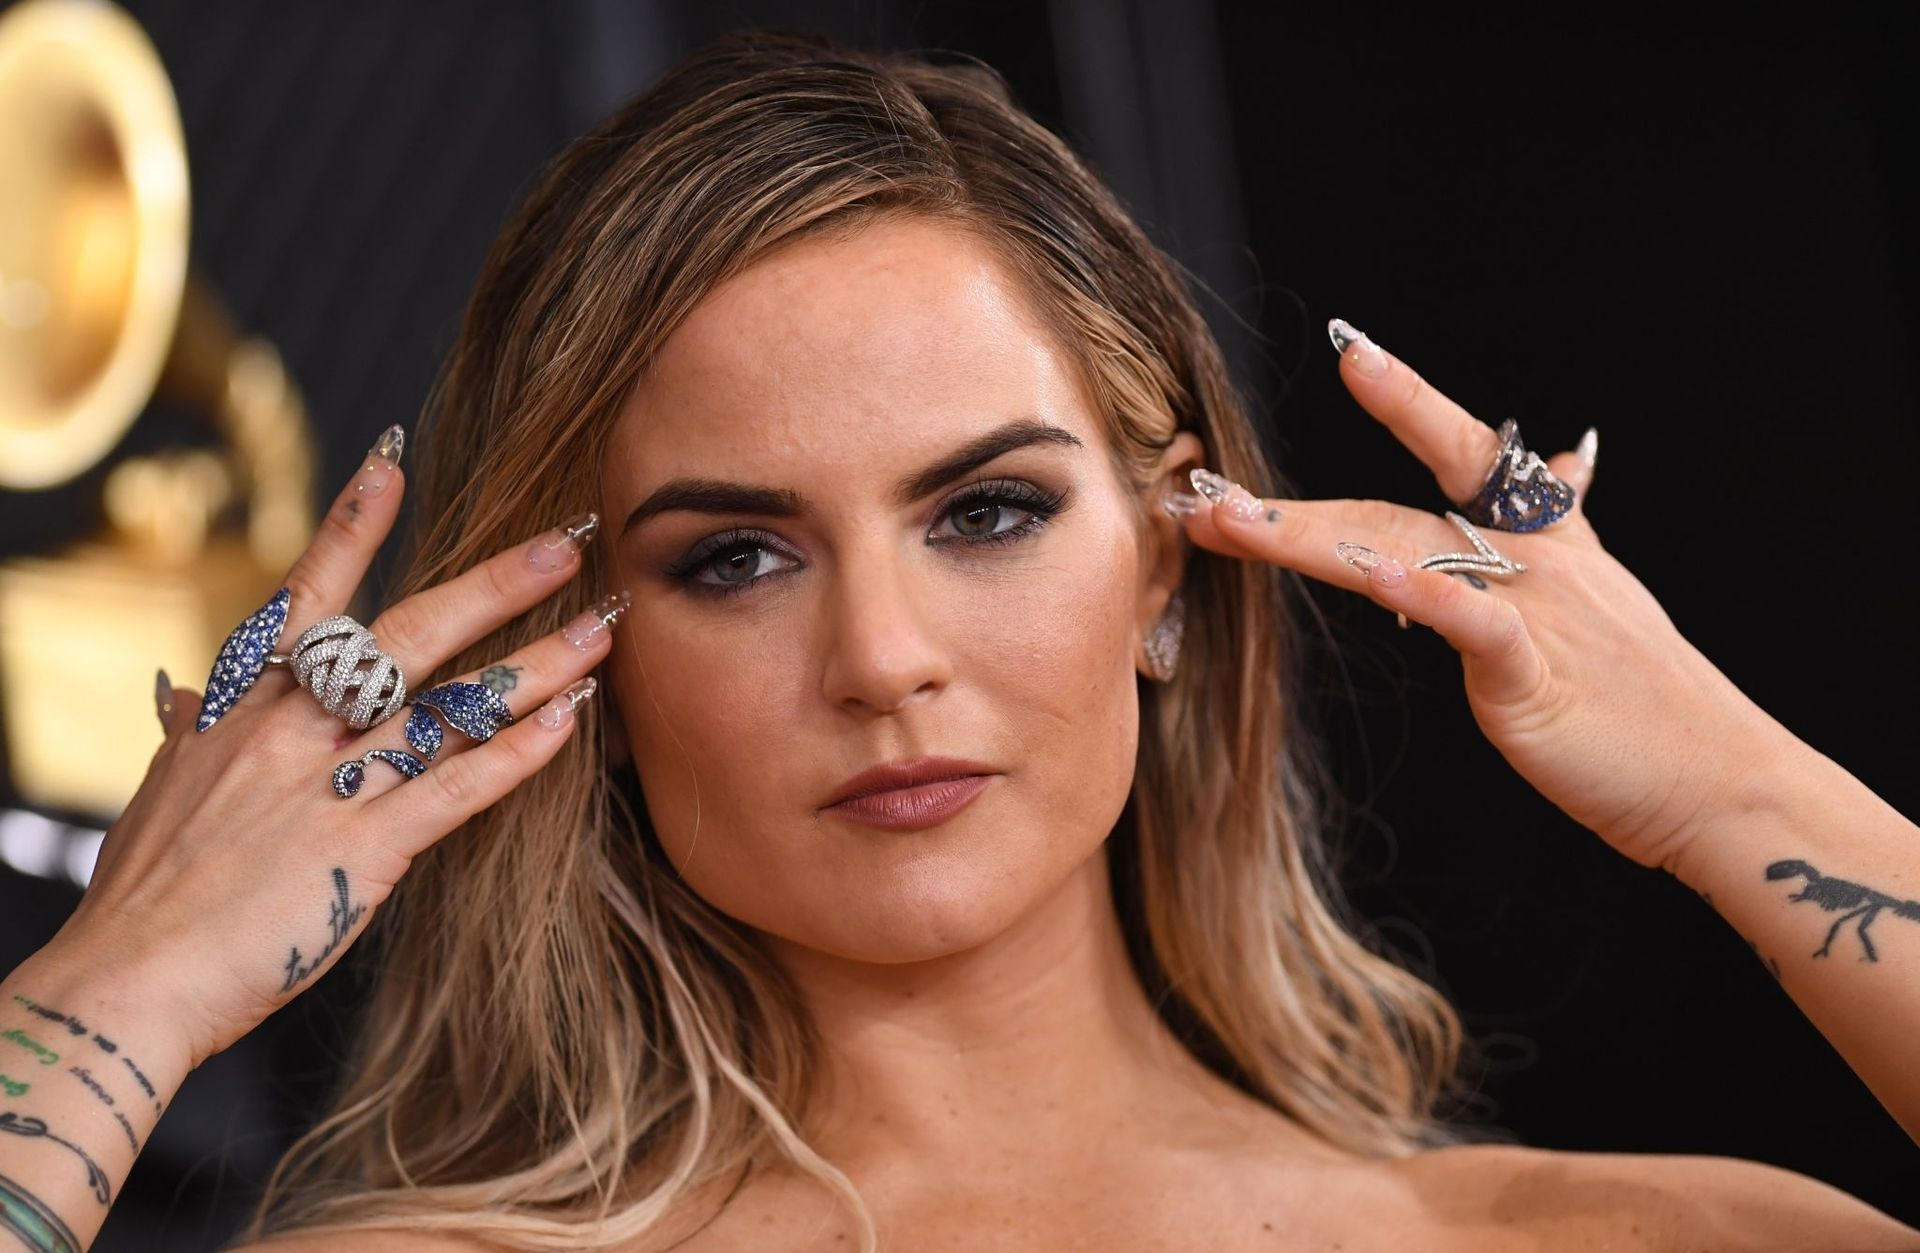 Jojo Shows Her Legs And Cleavage At The 62nd Annual Grammy Awards 0040